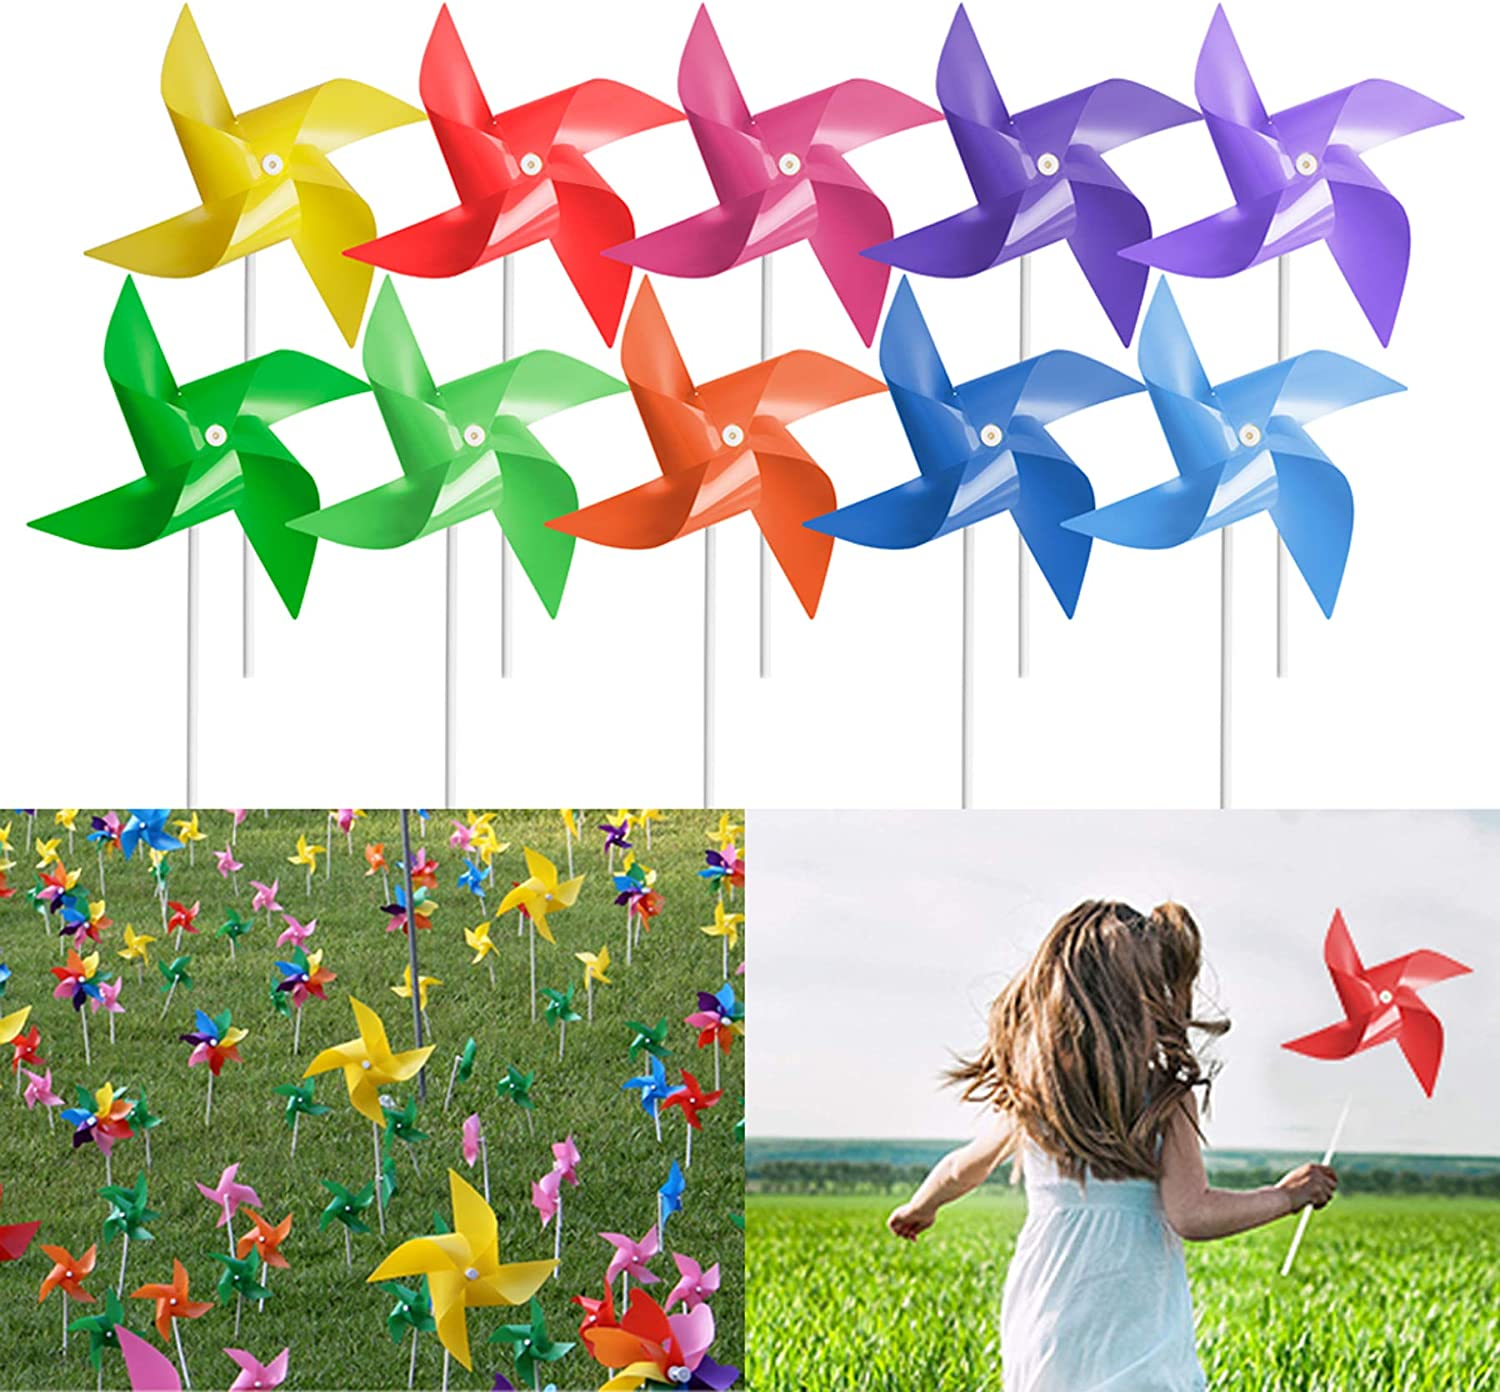 Tsocent 100 Pcs Pinwheels, 10 Mixed Colors Wind Spinners and Party Favors Gifts for Kids, Outdoor Decorational Pinwheels for Yard and Garden